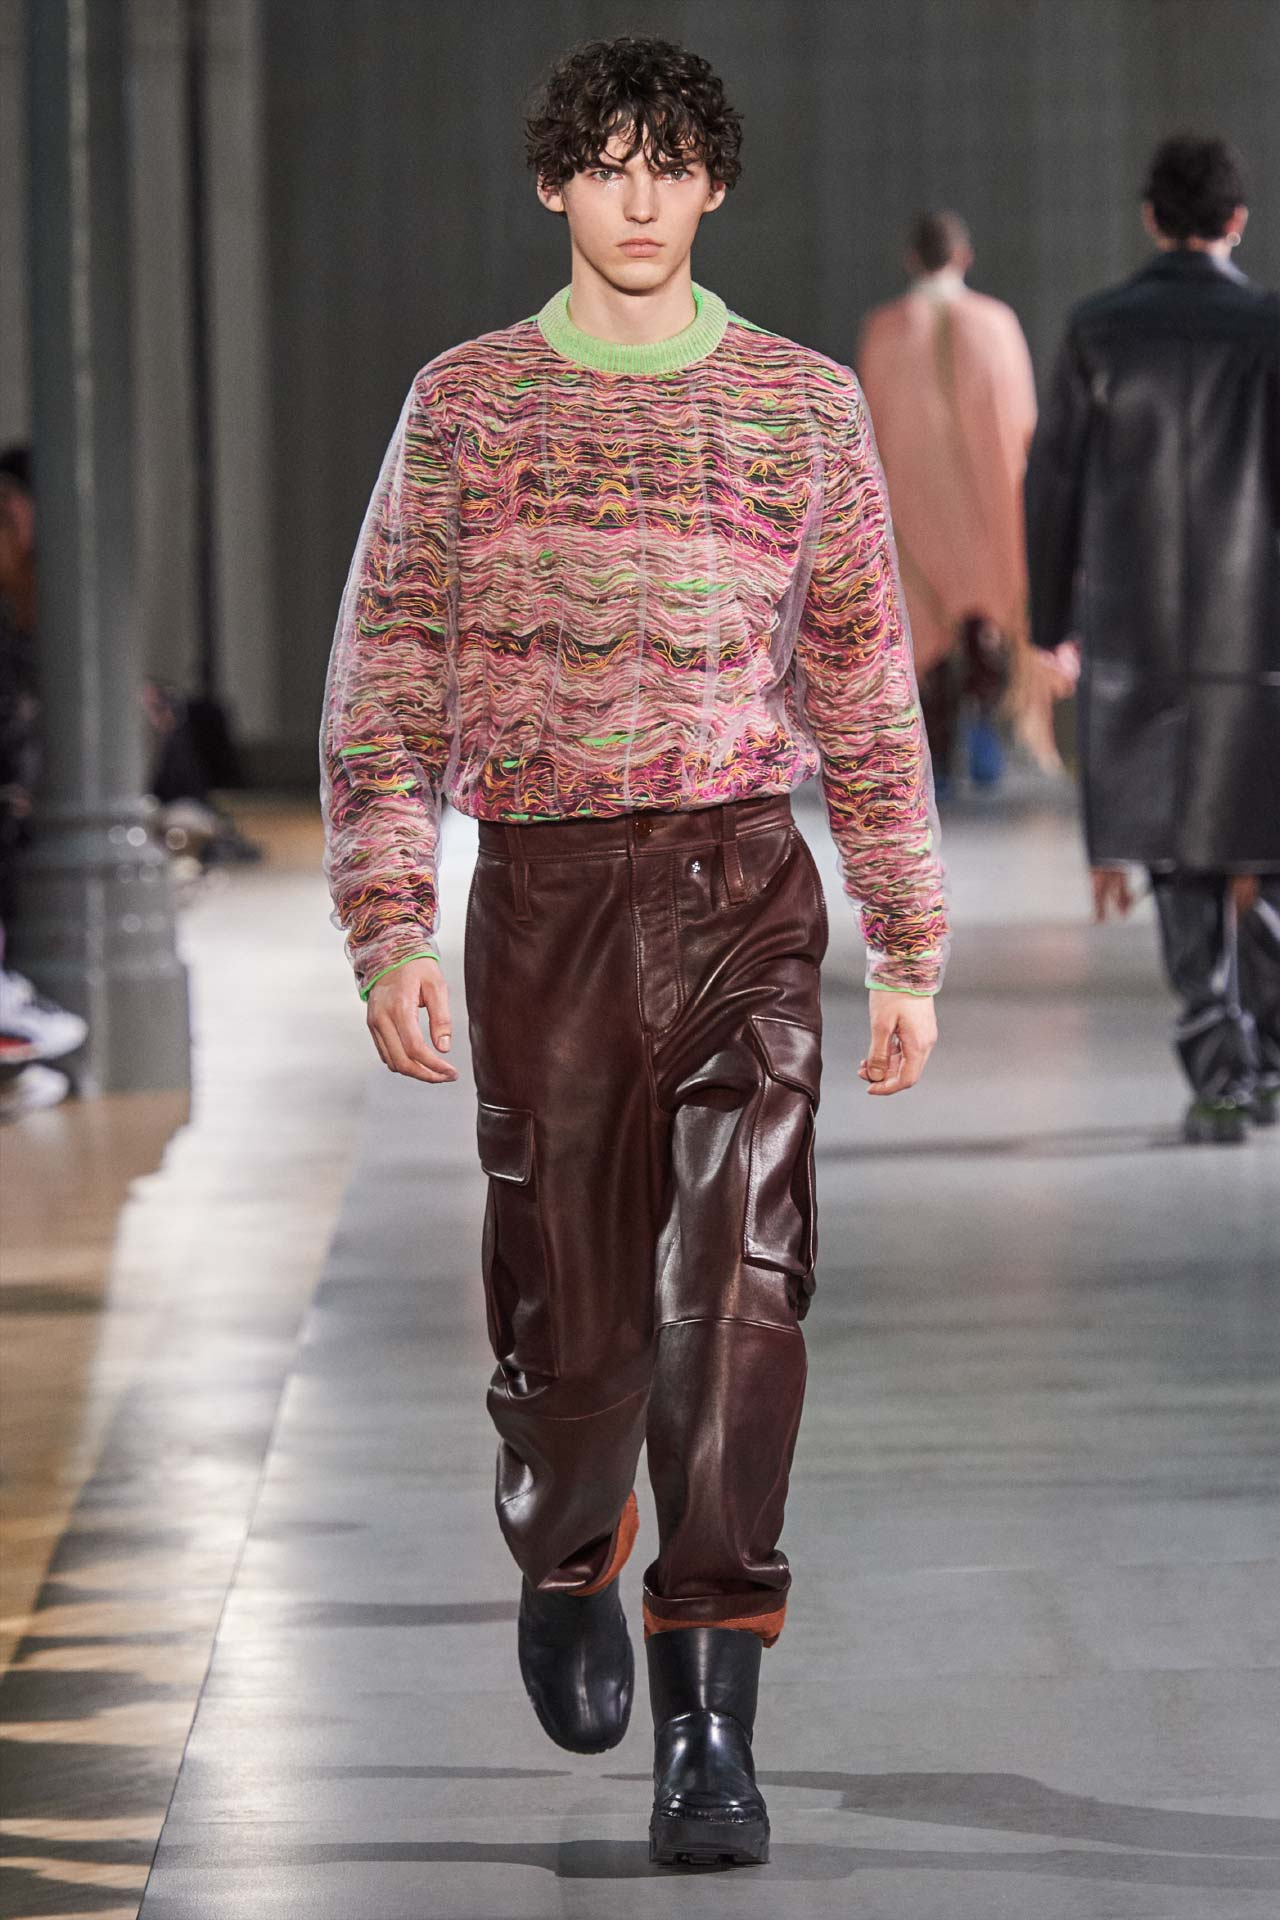 Look Fall/Winter 2019, image 37